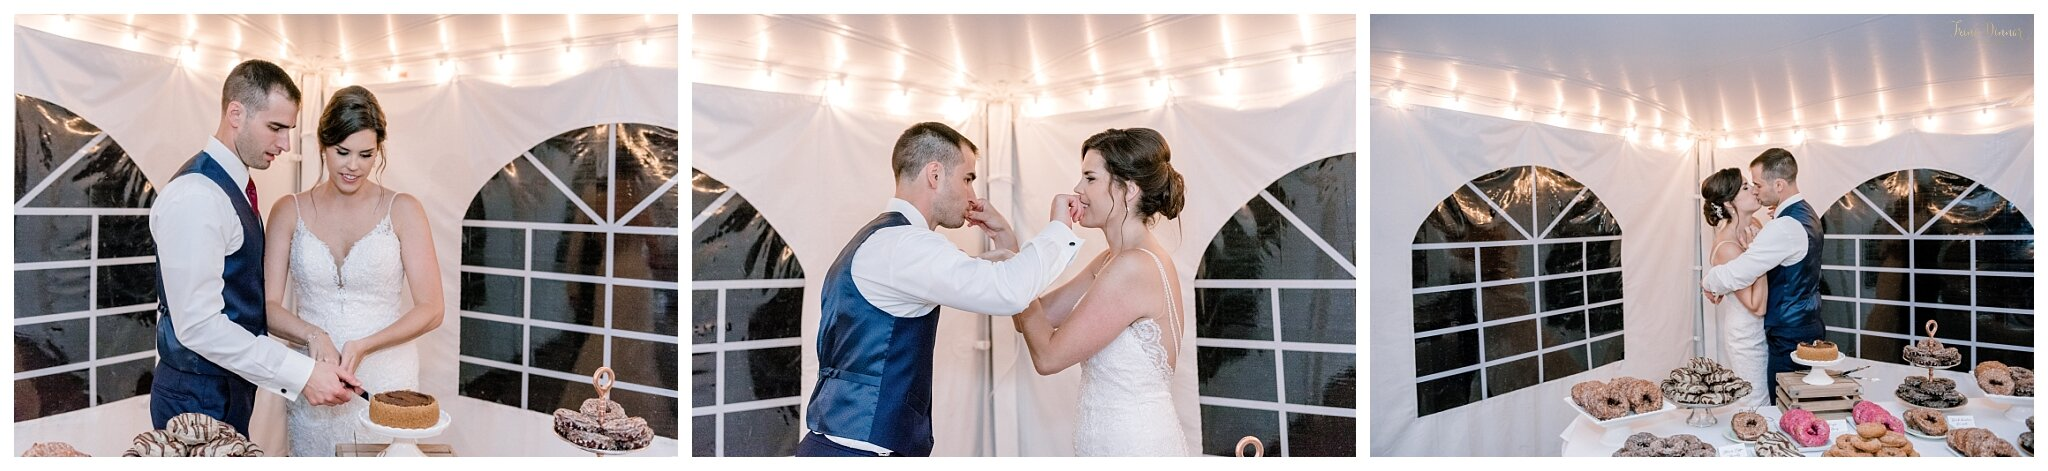 Cake Cutting at Tented Wedding Reception